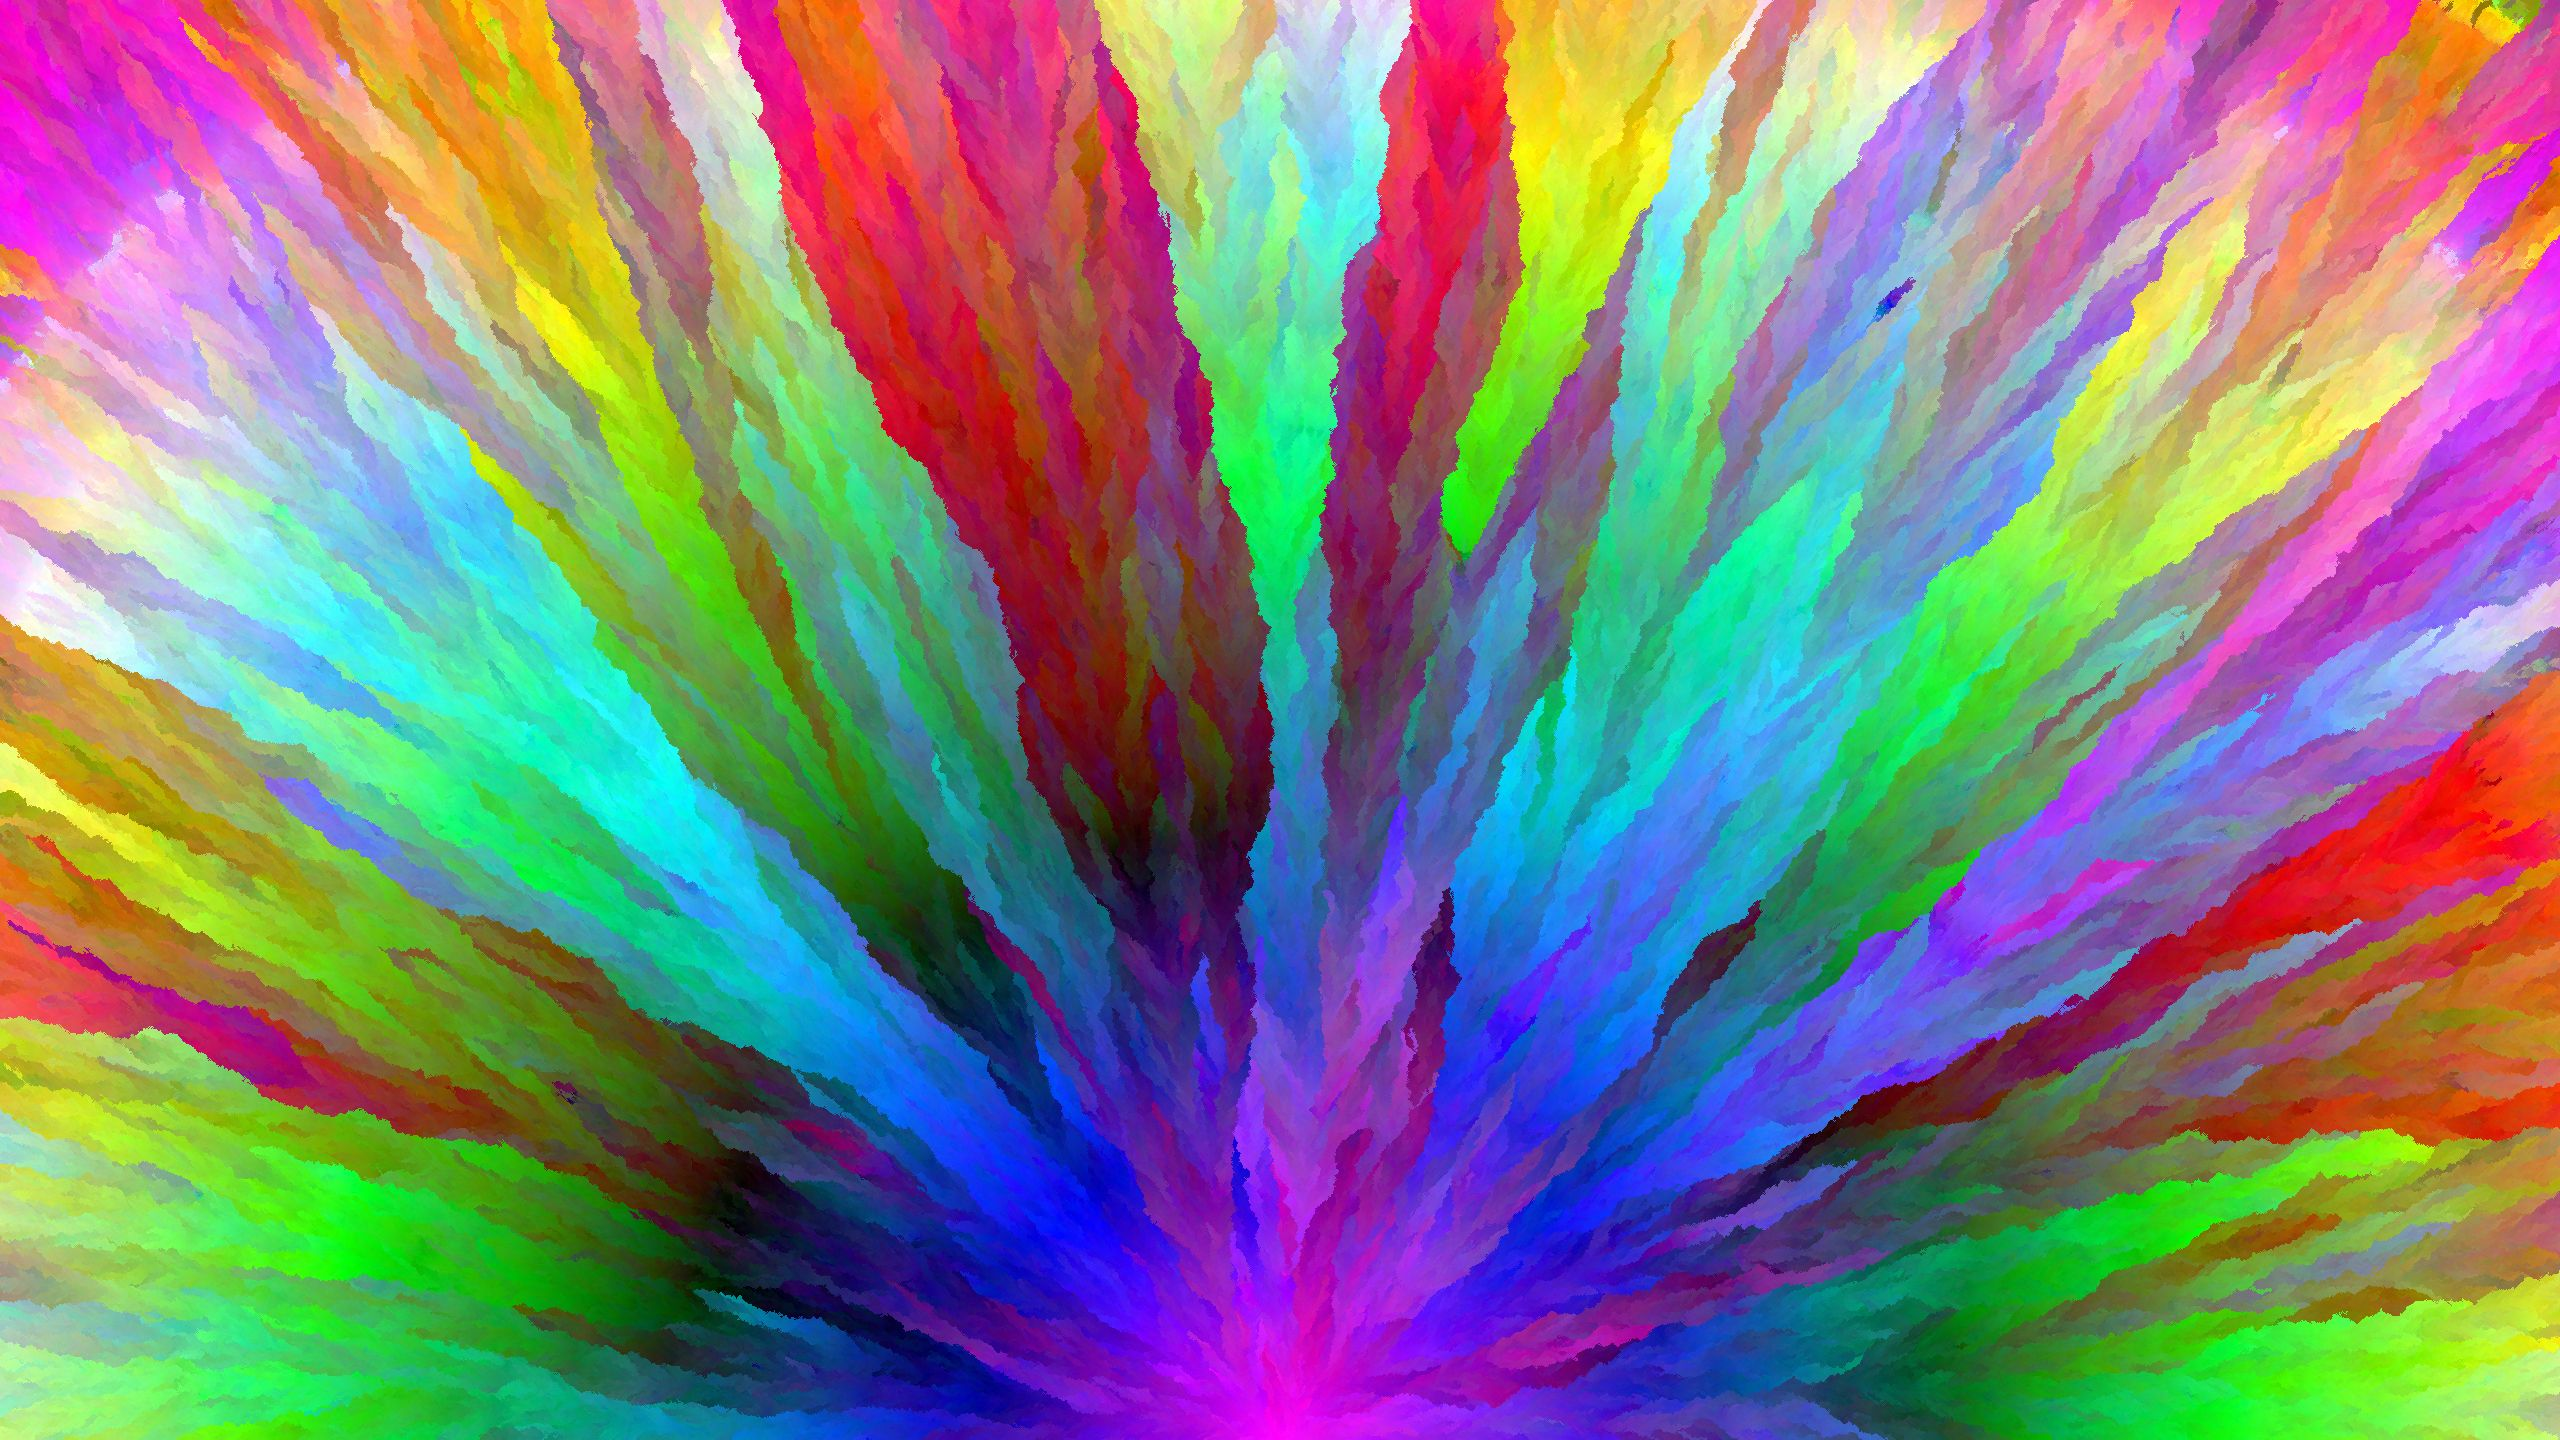 2560x1440 Colorful Wallpapers Top Free 2560x1440 Colorful Backgrounds Wallpaperaccess